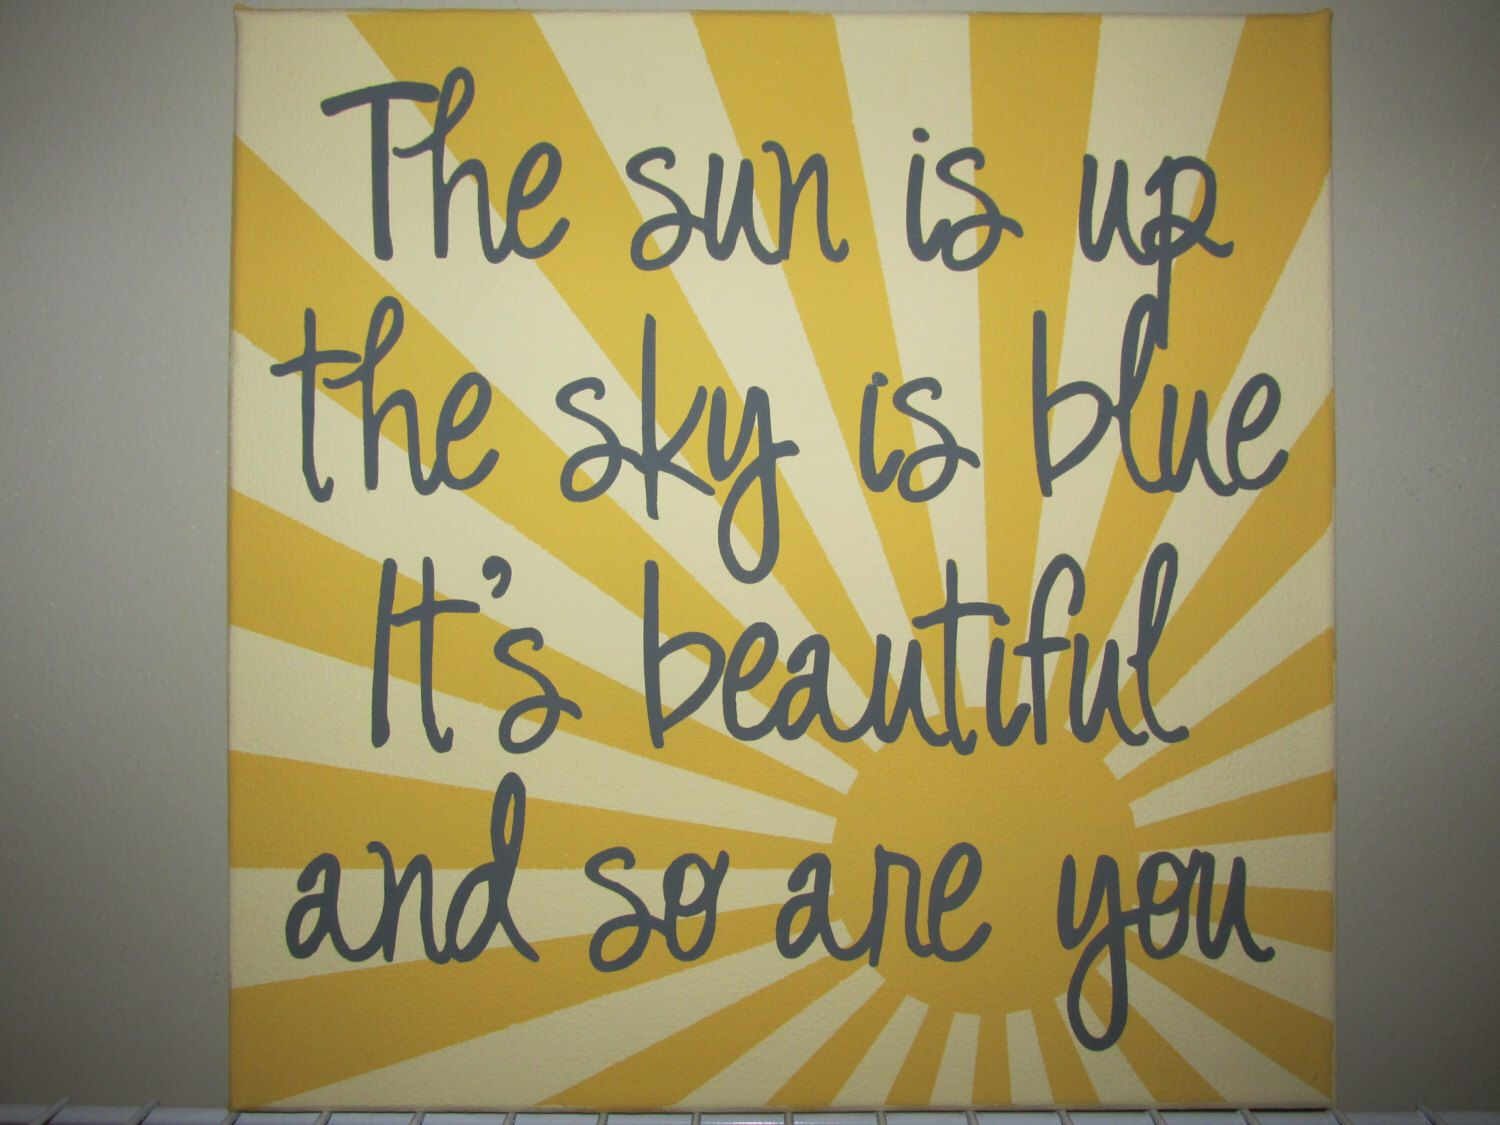 """The Beatles Dear Prudence quote """"The sun is up, the sky is blue, it's beautiful and so are you"""" 12x12 hand-painted canvas by handsofmiriam on Etsy https://www.etsy.com/listing/190305586/the-beatles-dear-prudence-quote-the-sun"""